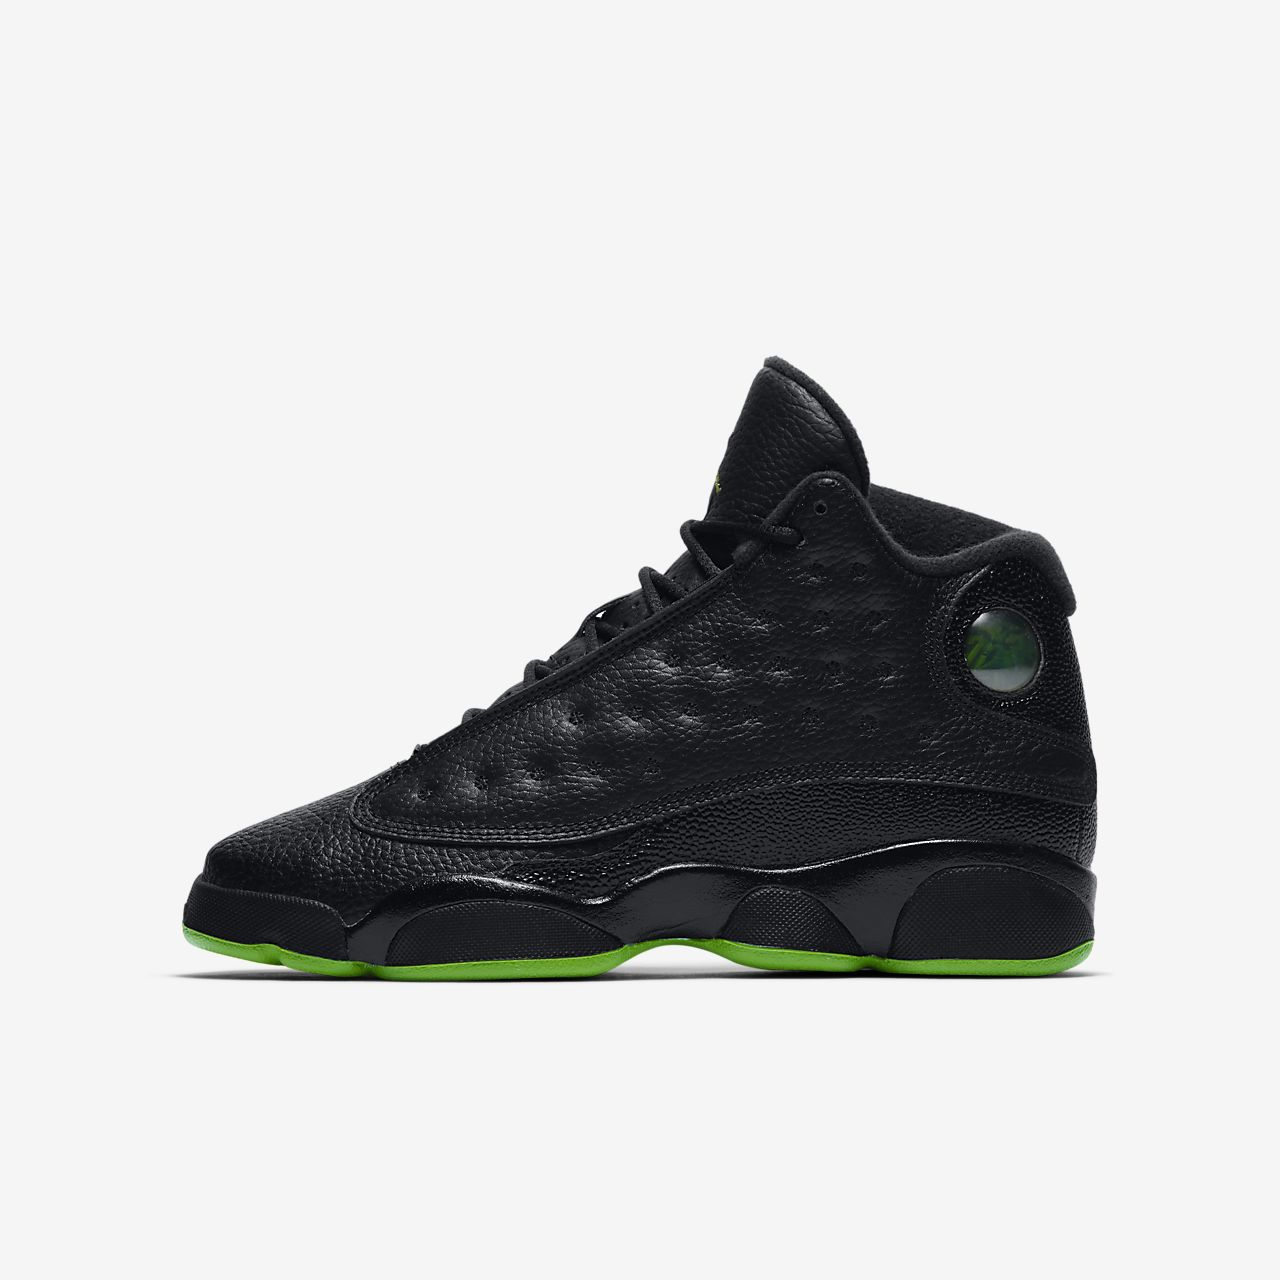 ... Air Jordan 13 Retro Big Kids' Shoe